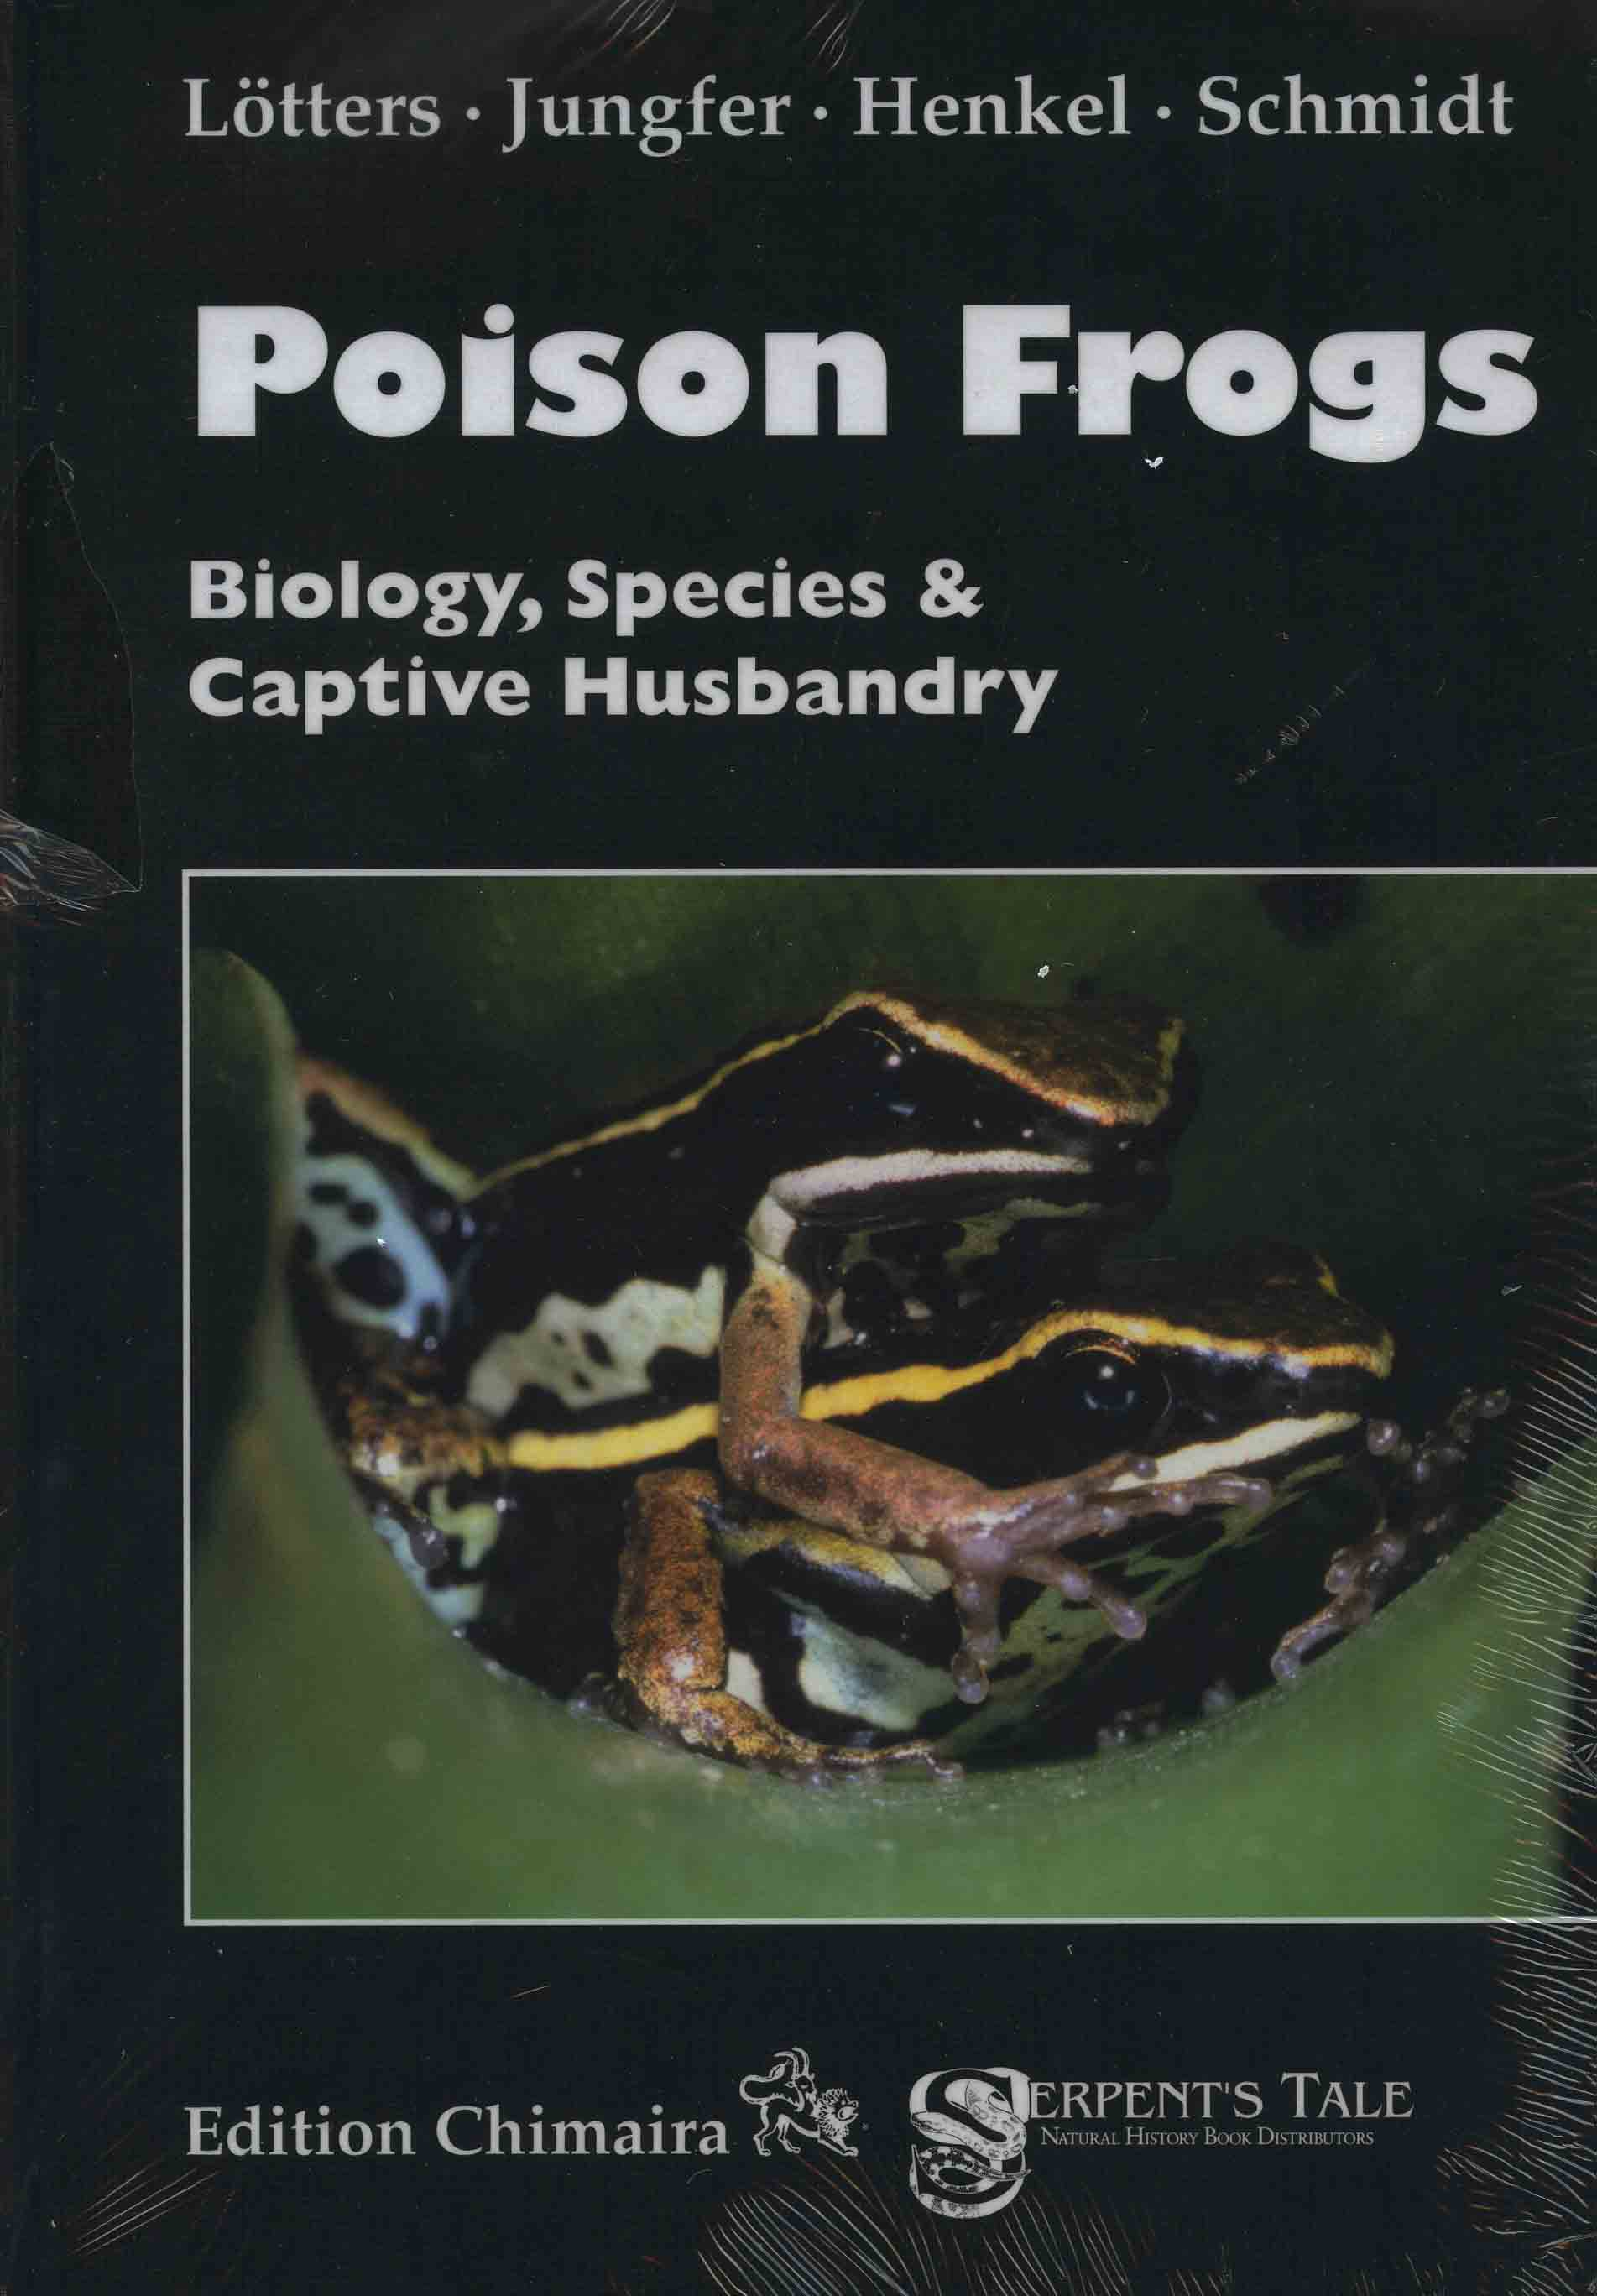 Image for Poison Frogs: Biology, Species & Captive Husbandry,